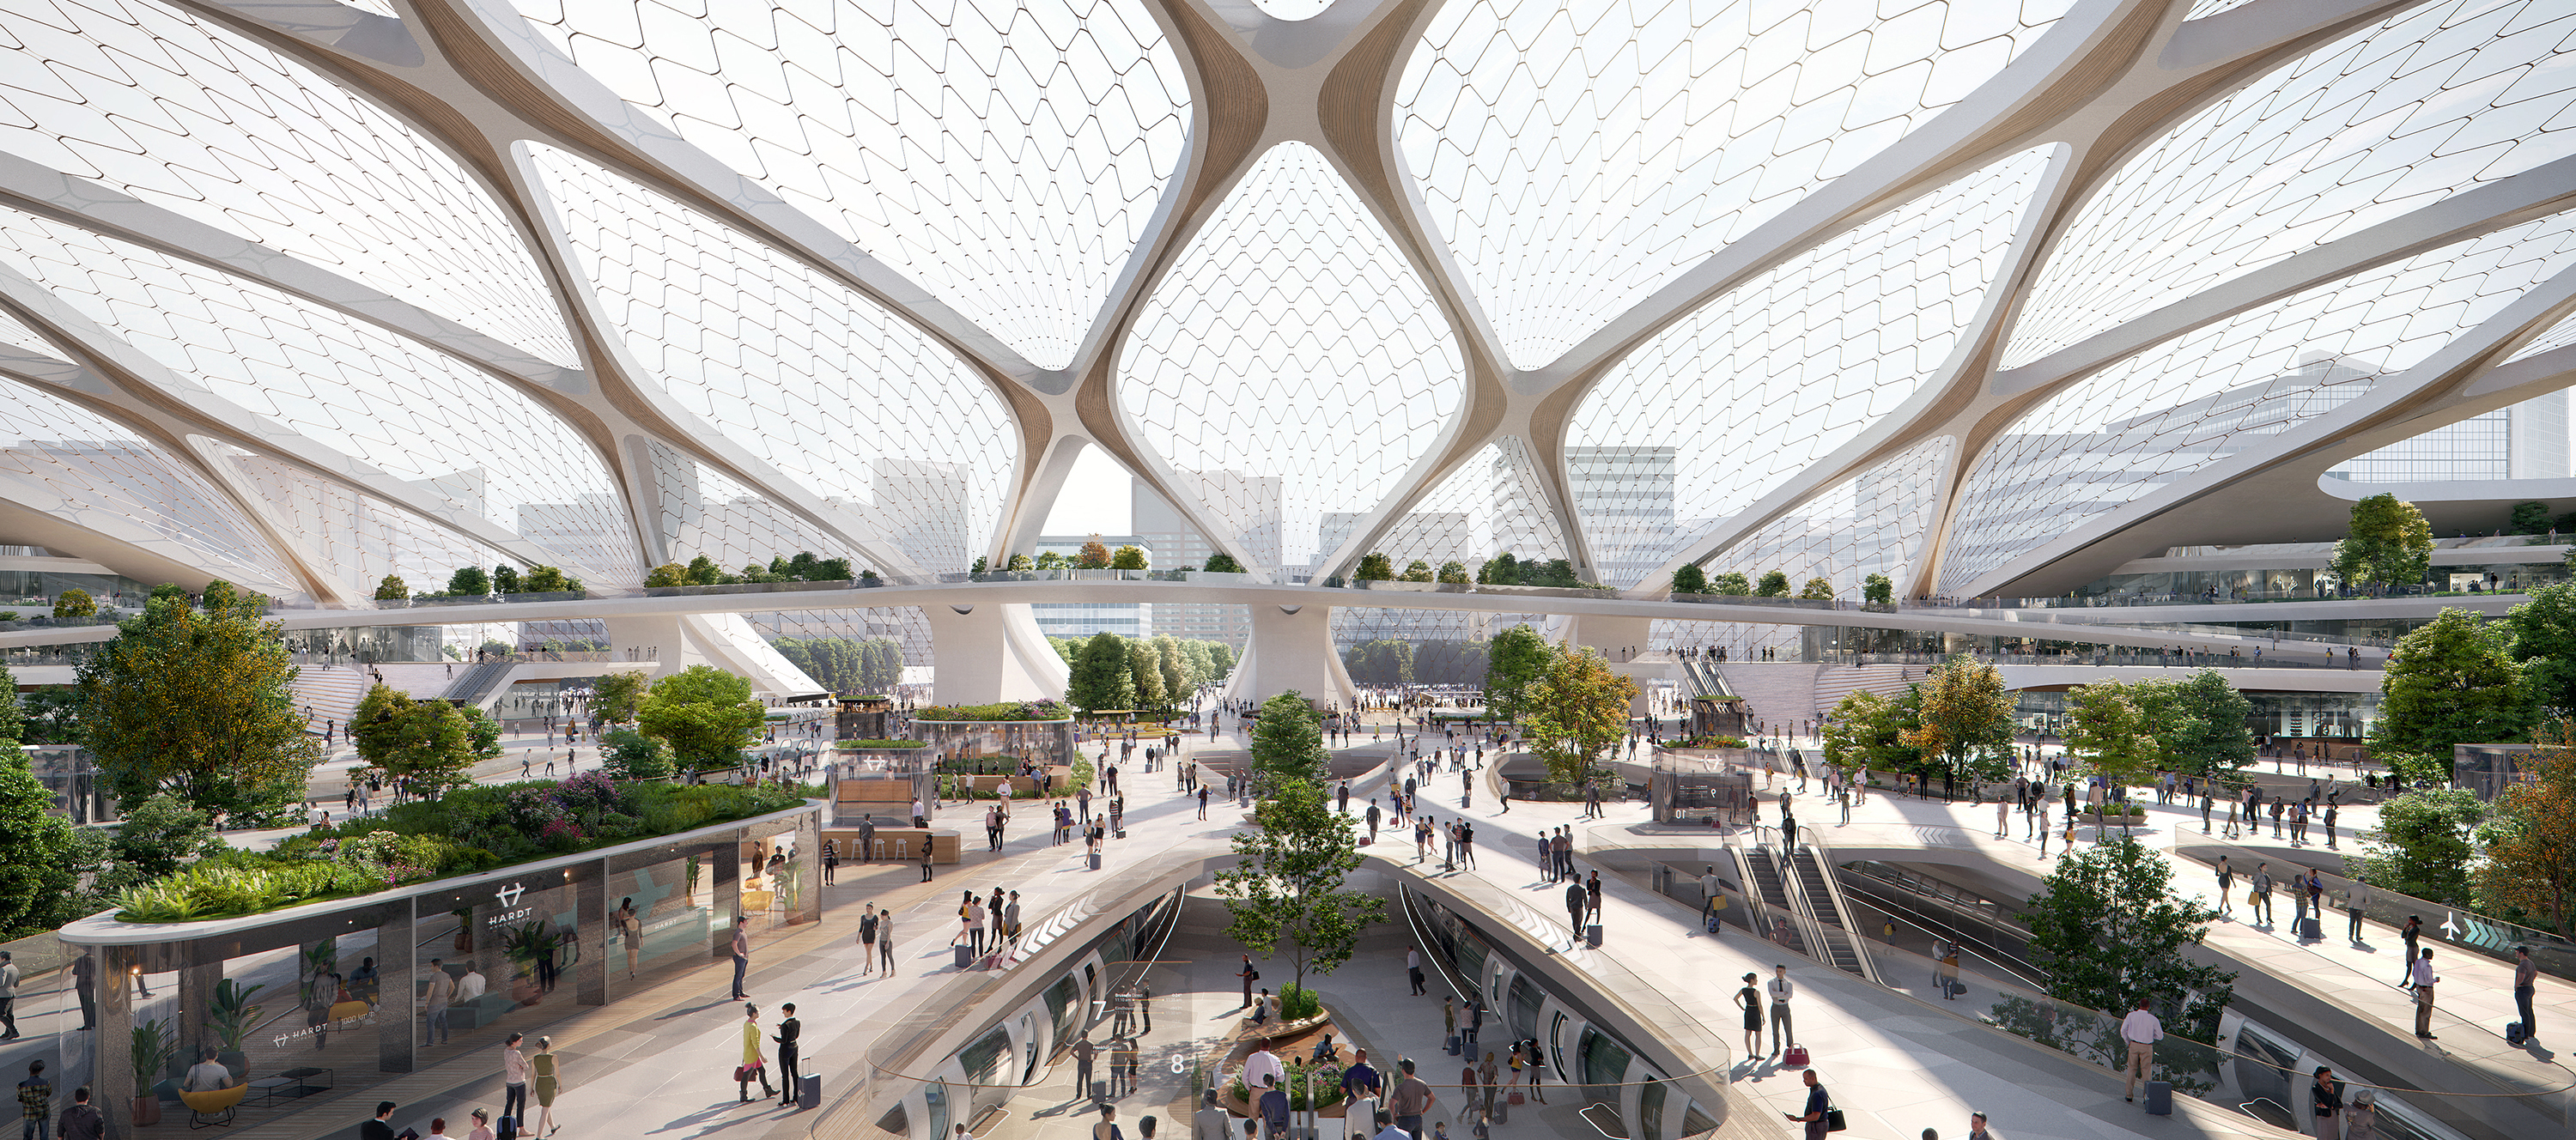 Rendering. 'Hyperloop Station' from Amsterdam to Frankfurt by UNSFutures. Image © Plompmozes